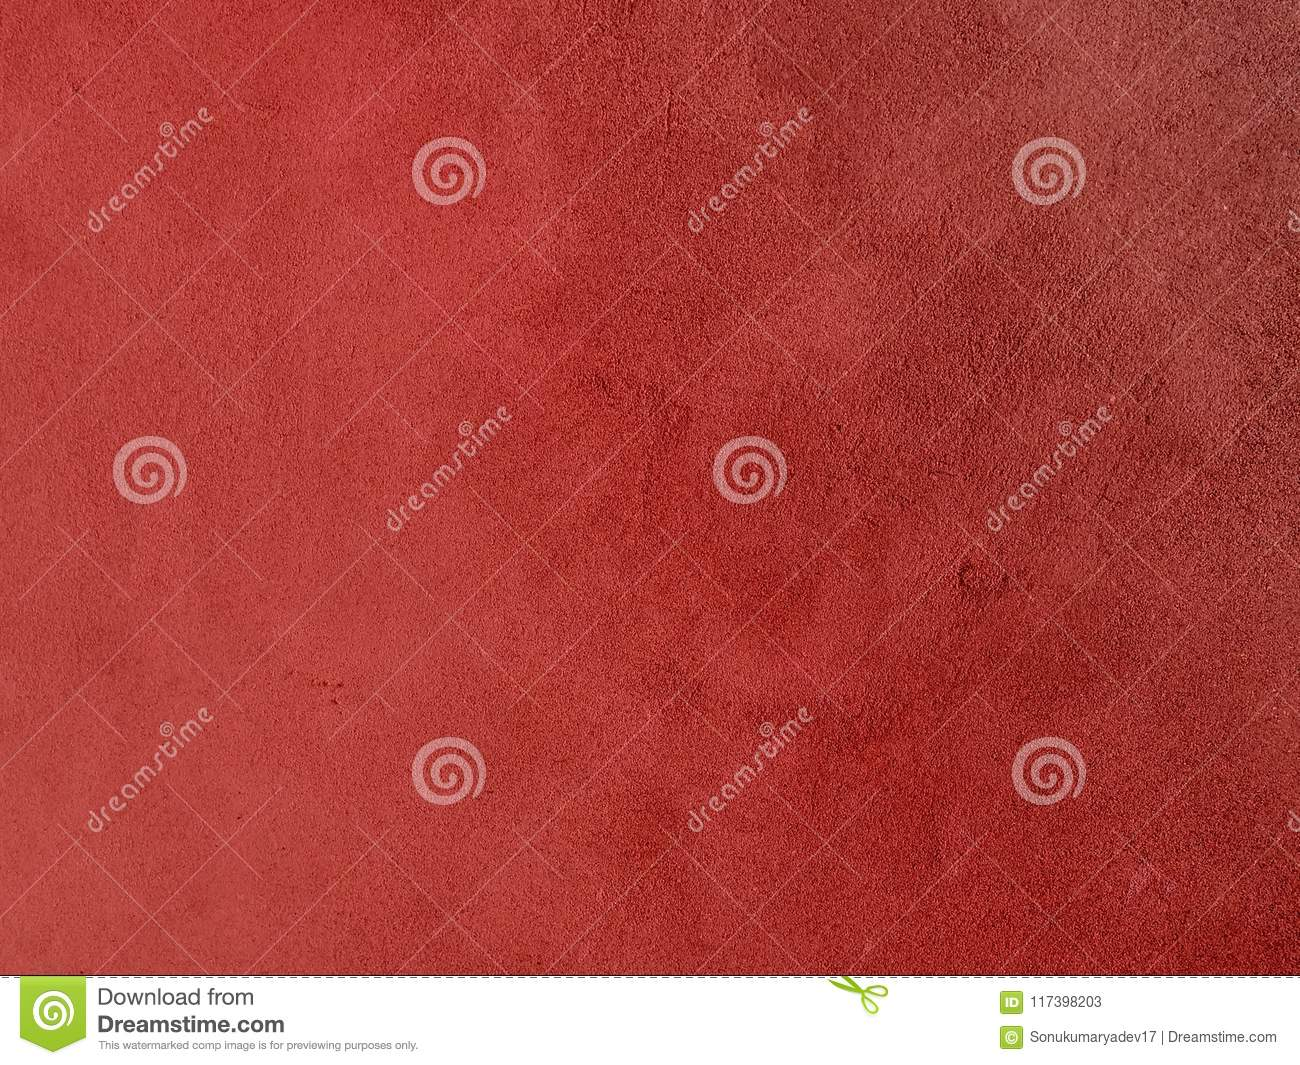 Red Marbled texture Abstract shaded blur background template wallpaper